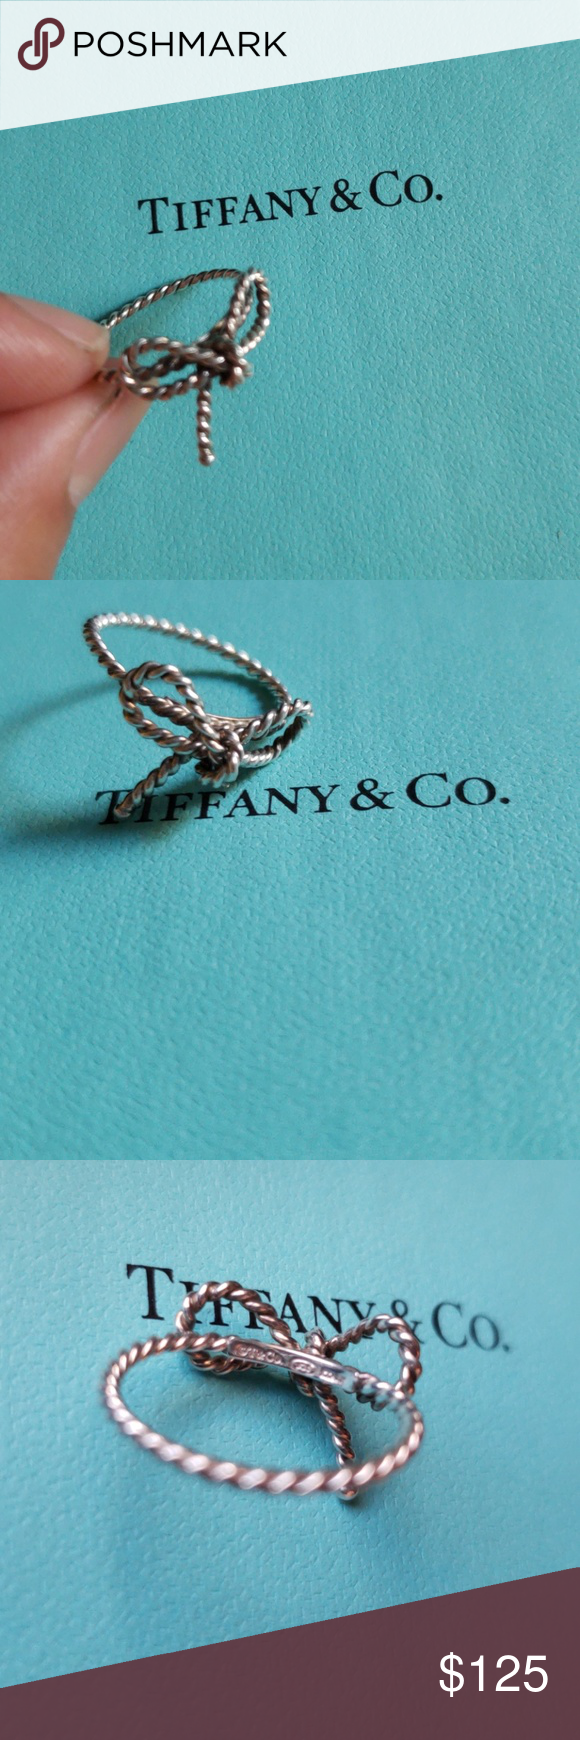 24+ Tiffany and co fix jewelry information